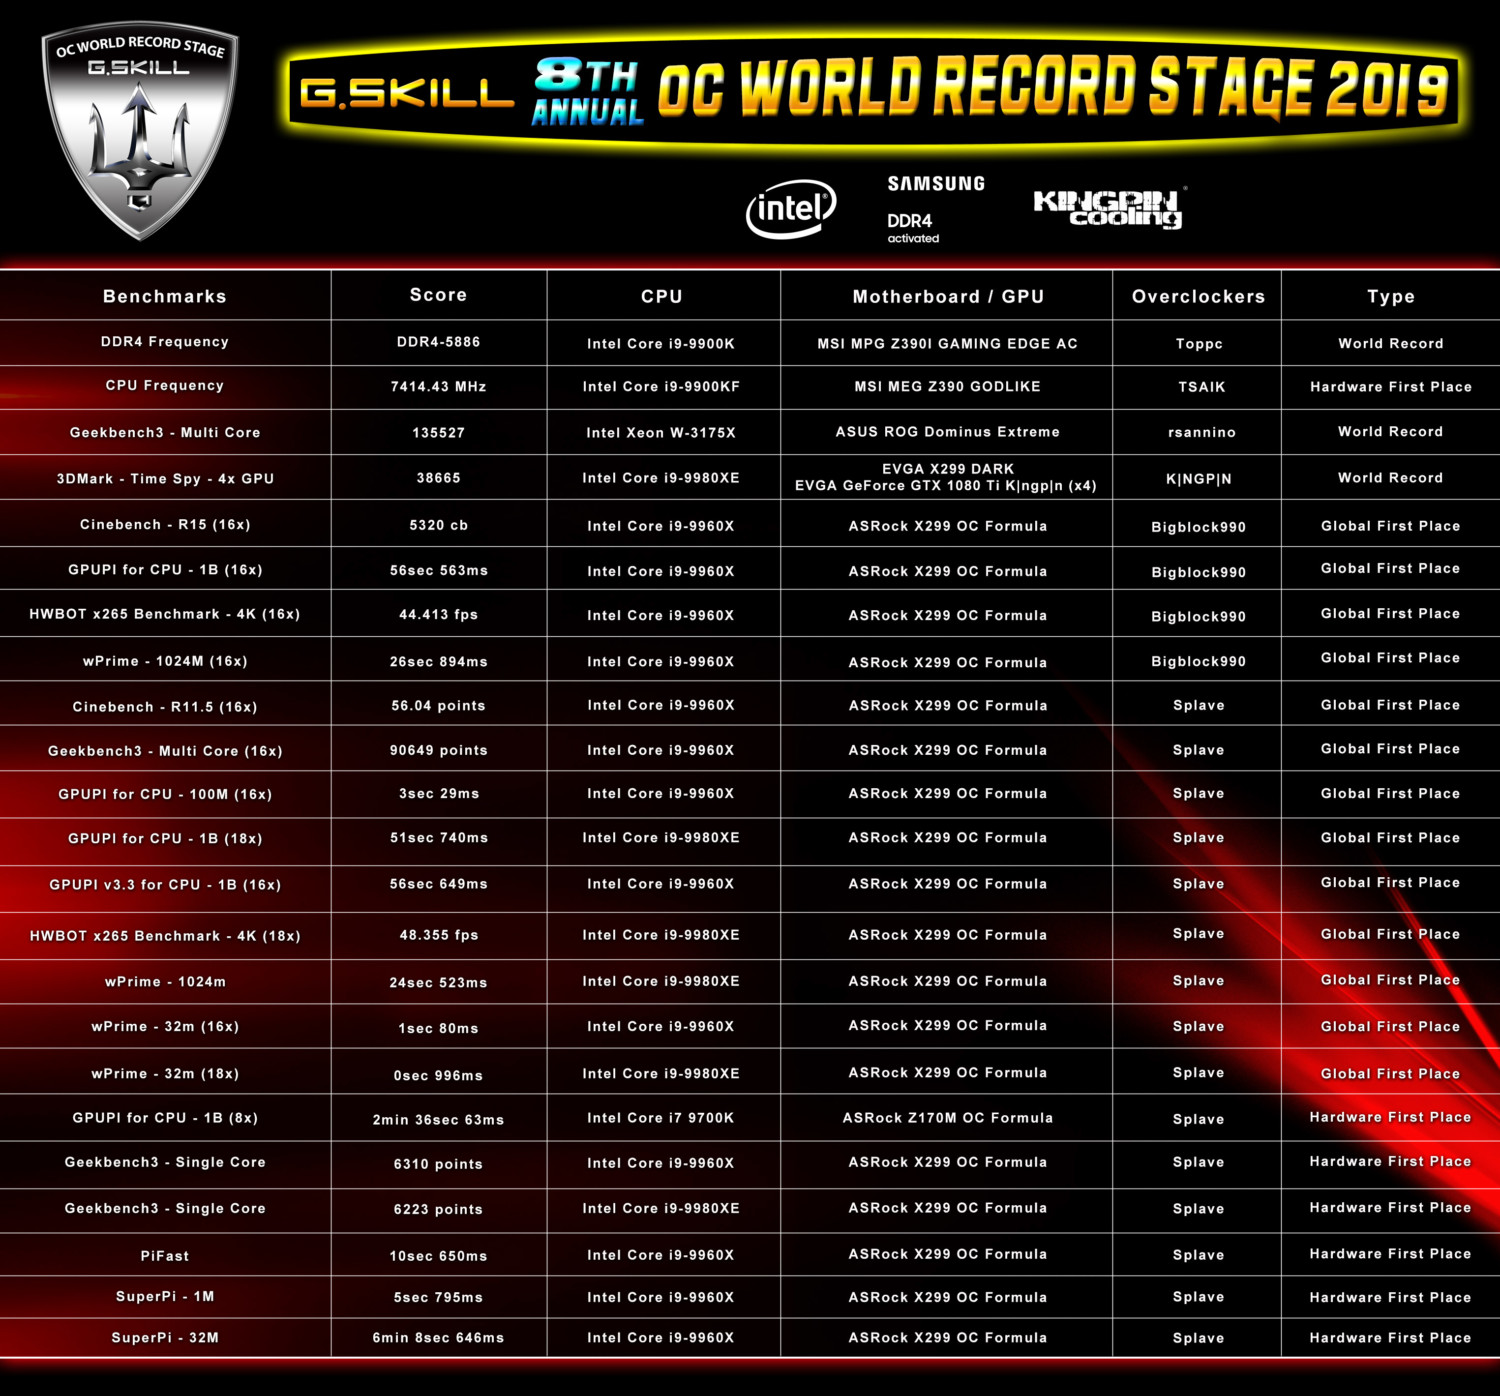 G SKILL DDR4 Memory Achieves DDR4-5886 and 23 Overclocking Records